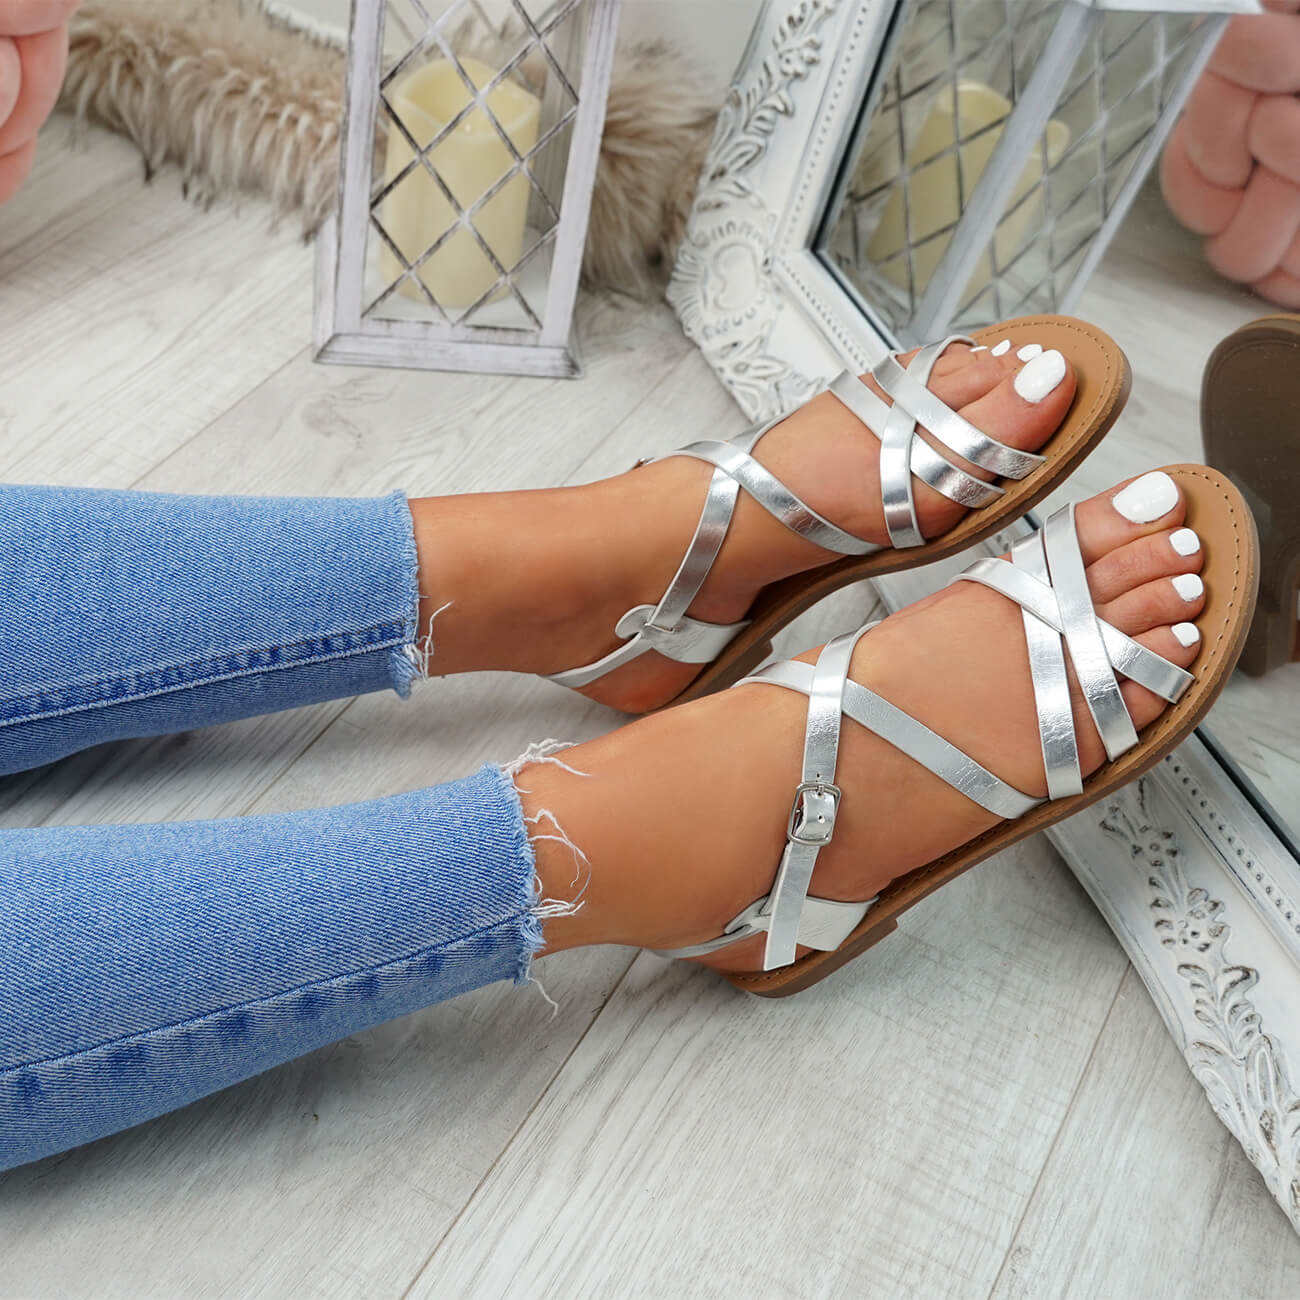 WOMENS-LADIES-ANKLE-STRAP-PEEP-TOE-BUCKLE-FLAT-SANDALS-SUMMER-CASUAL-SHOES thumbnail 25